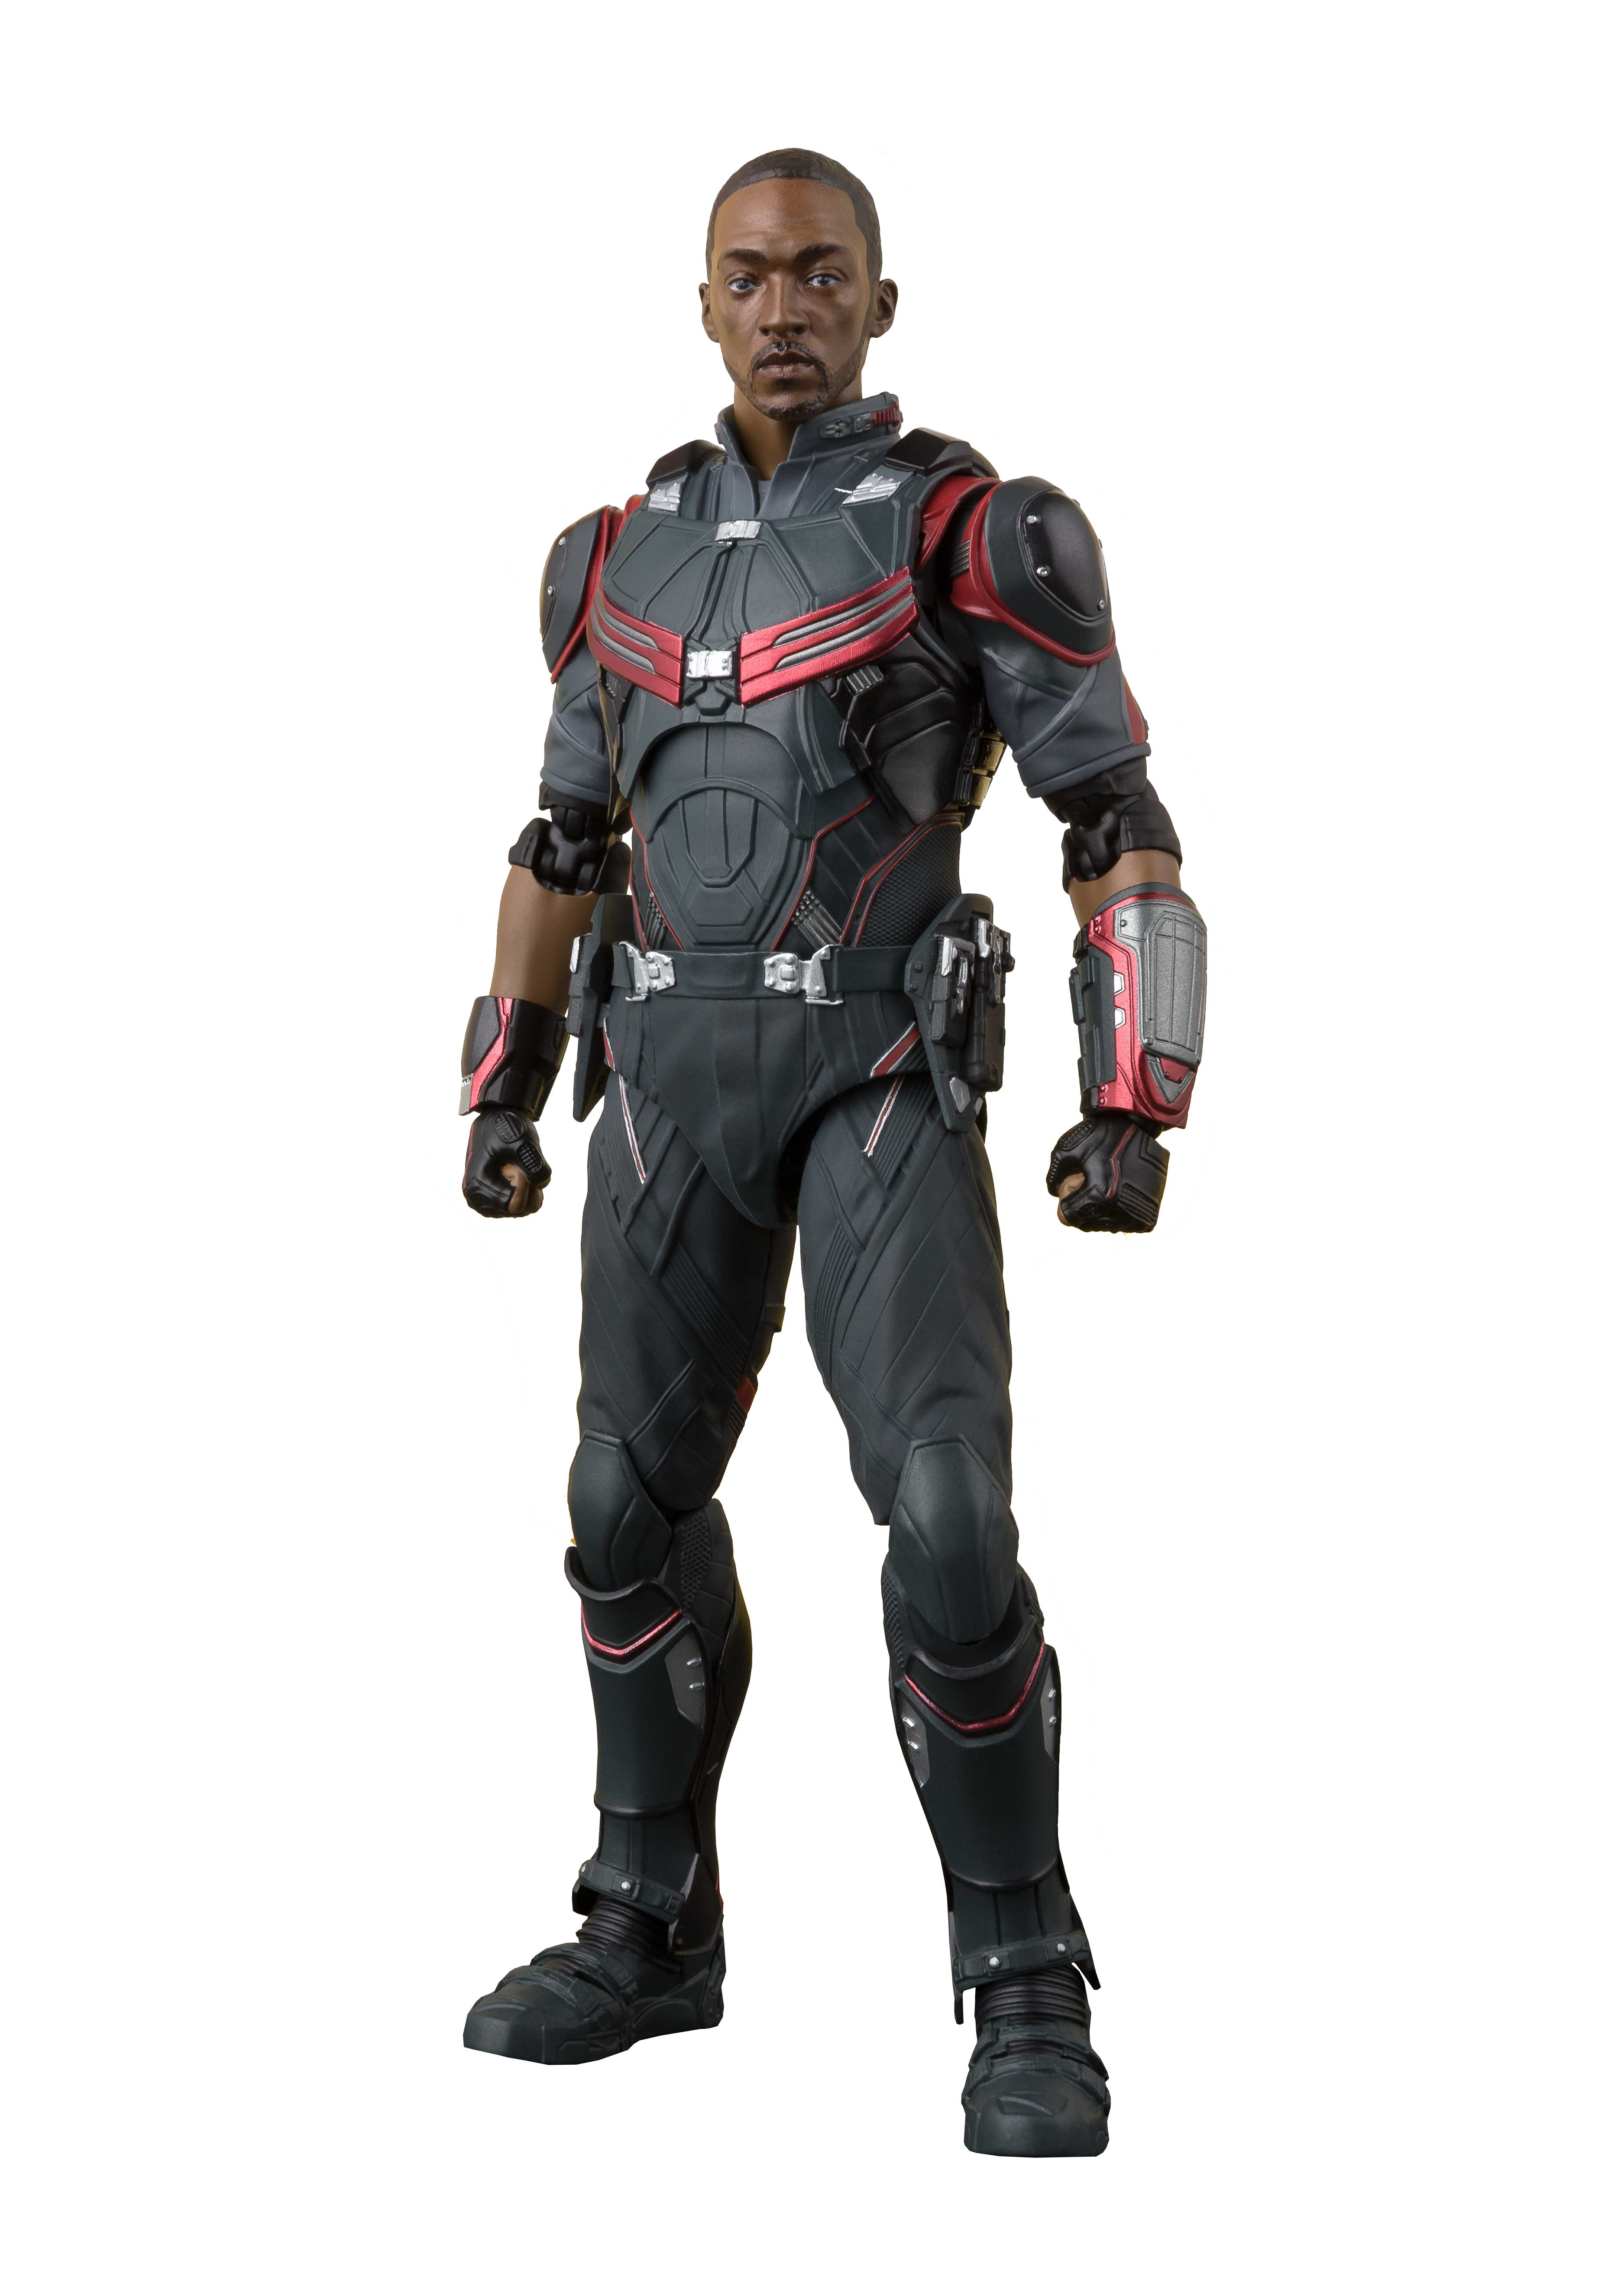 S.H.Figuarts SHF Avengers Infinity War Falcon Action Figure New in Box